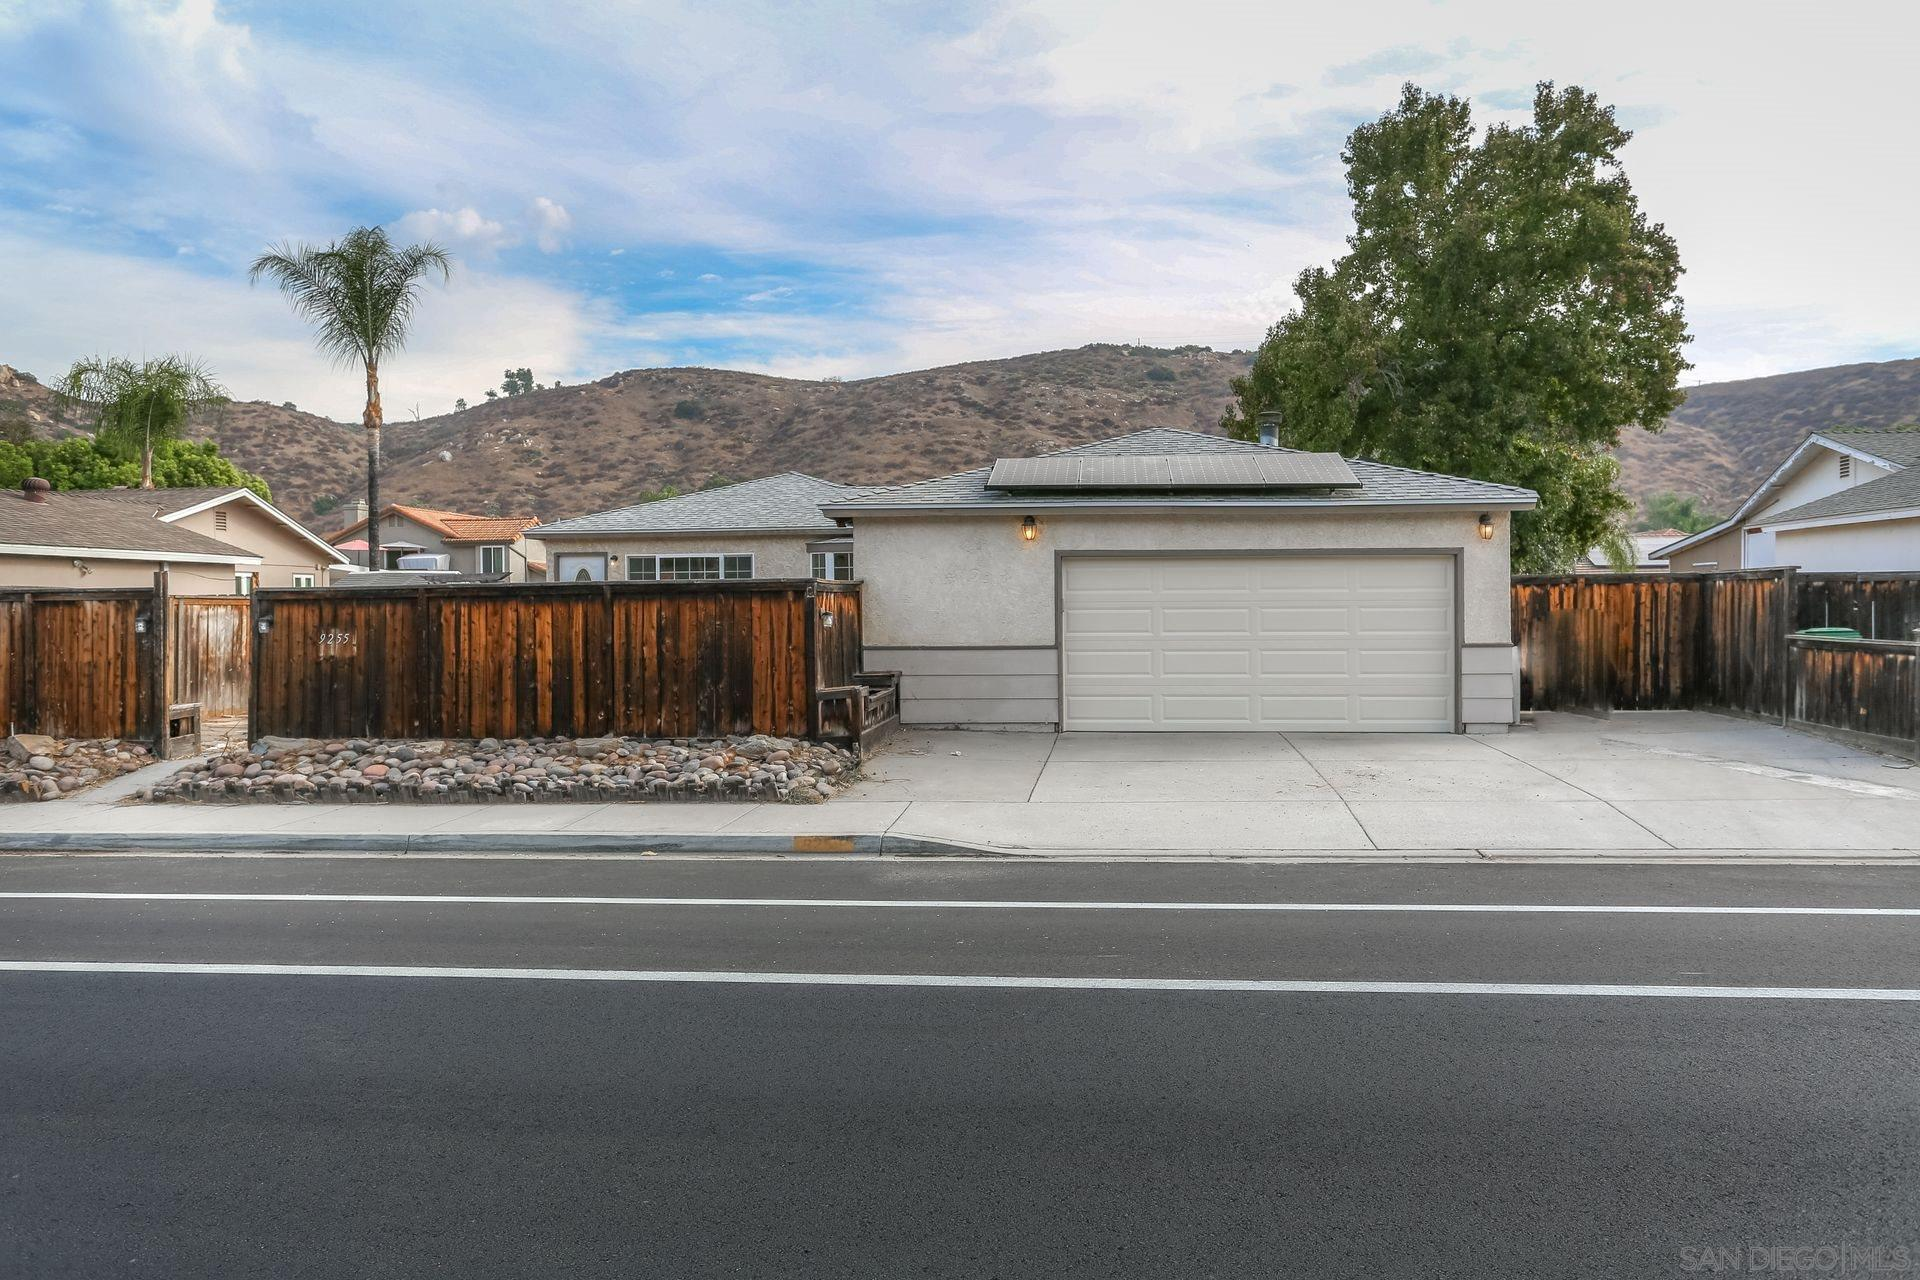 9255 Los Coches Rd, Lakeside, CA 92040